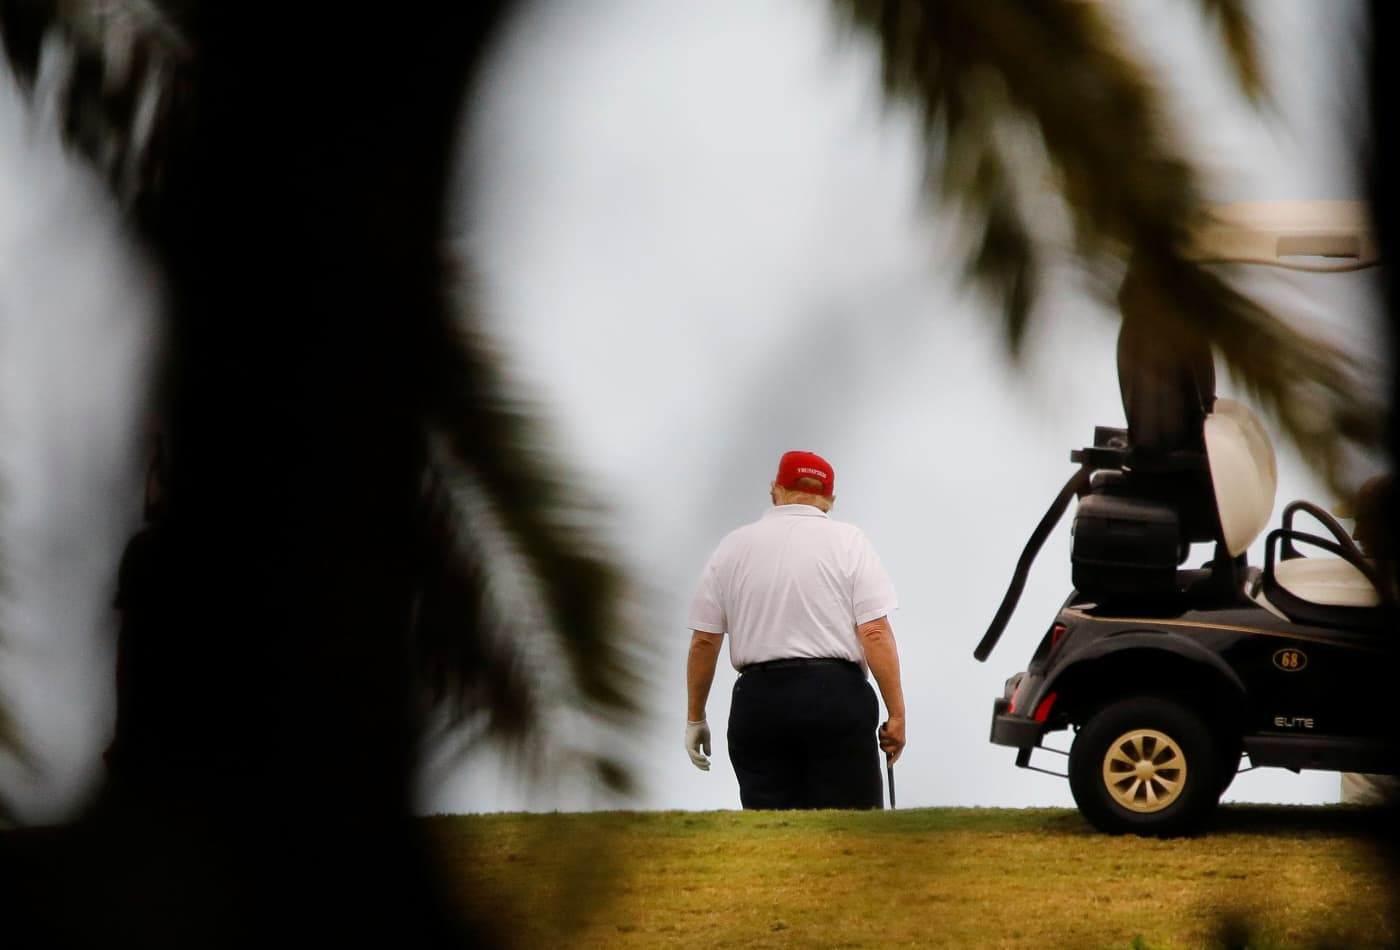 Palm Beach County looks to end Trump golf course lease after U.S. Capitol riot